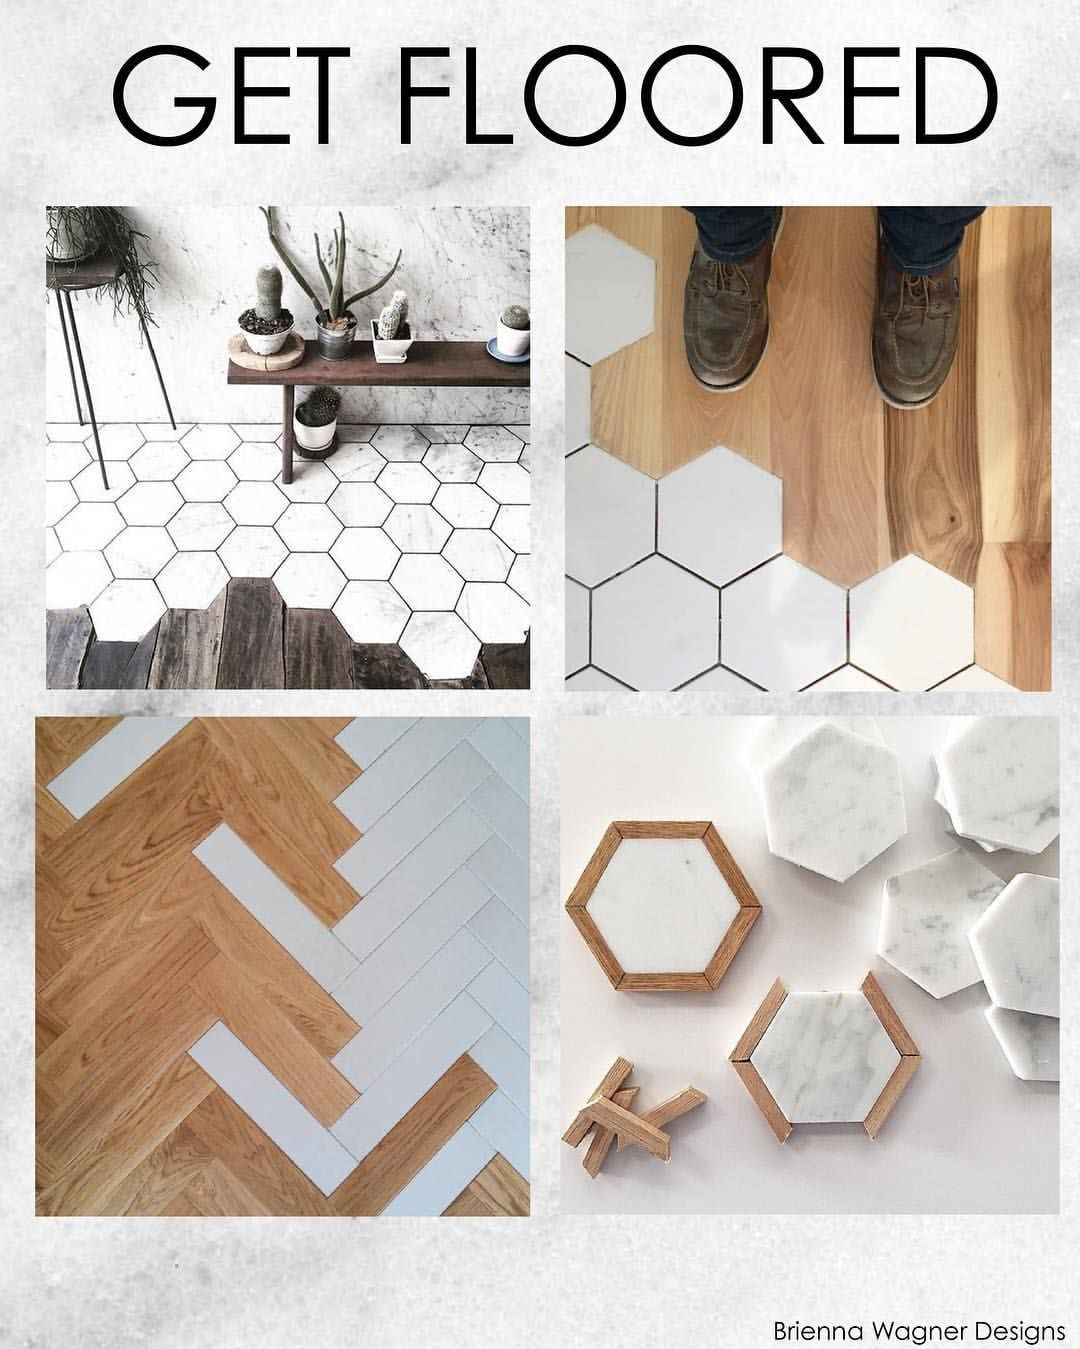 A trend I think in the right materials could be so much fun! Love the idea of transitioning flooring more creatively. Thoughts?! Love? Hate?